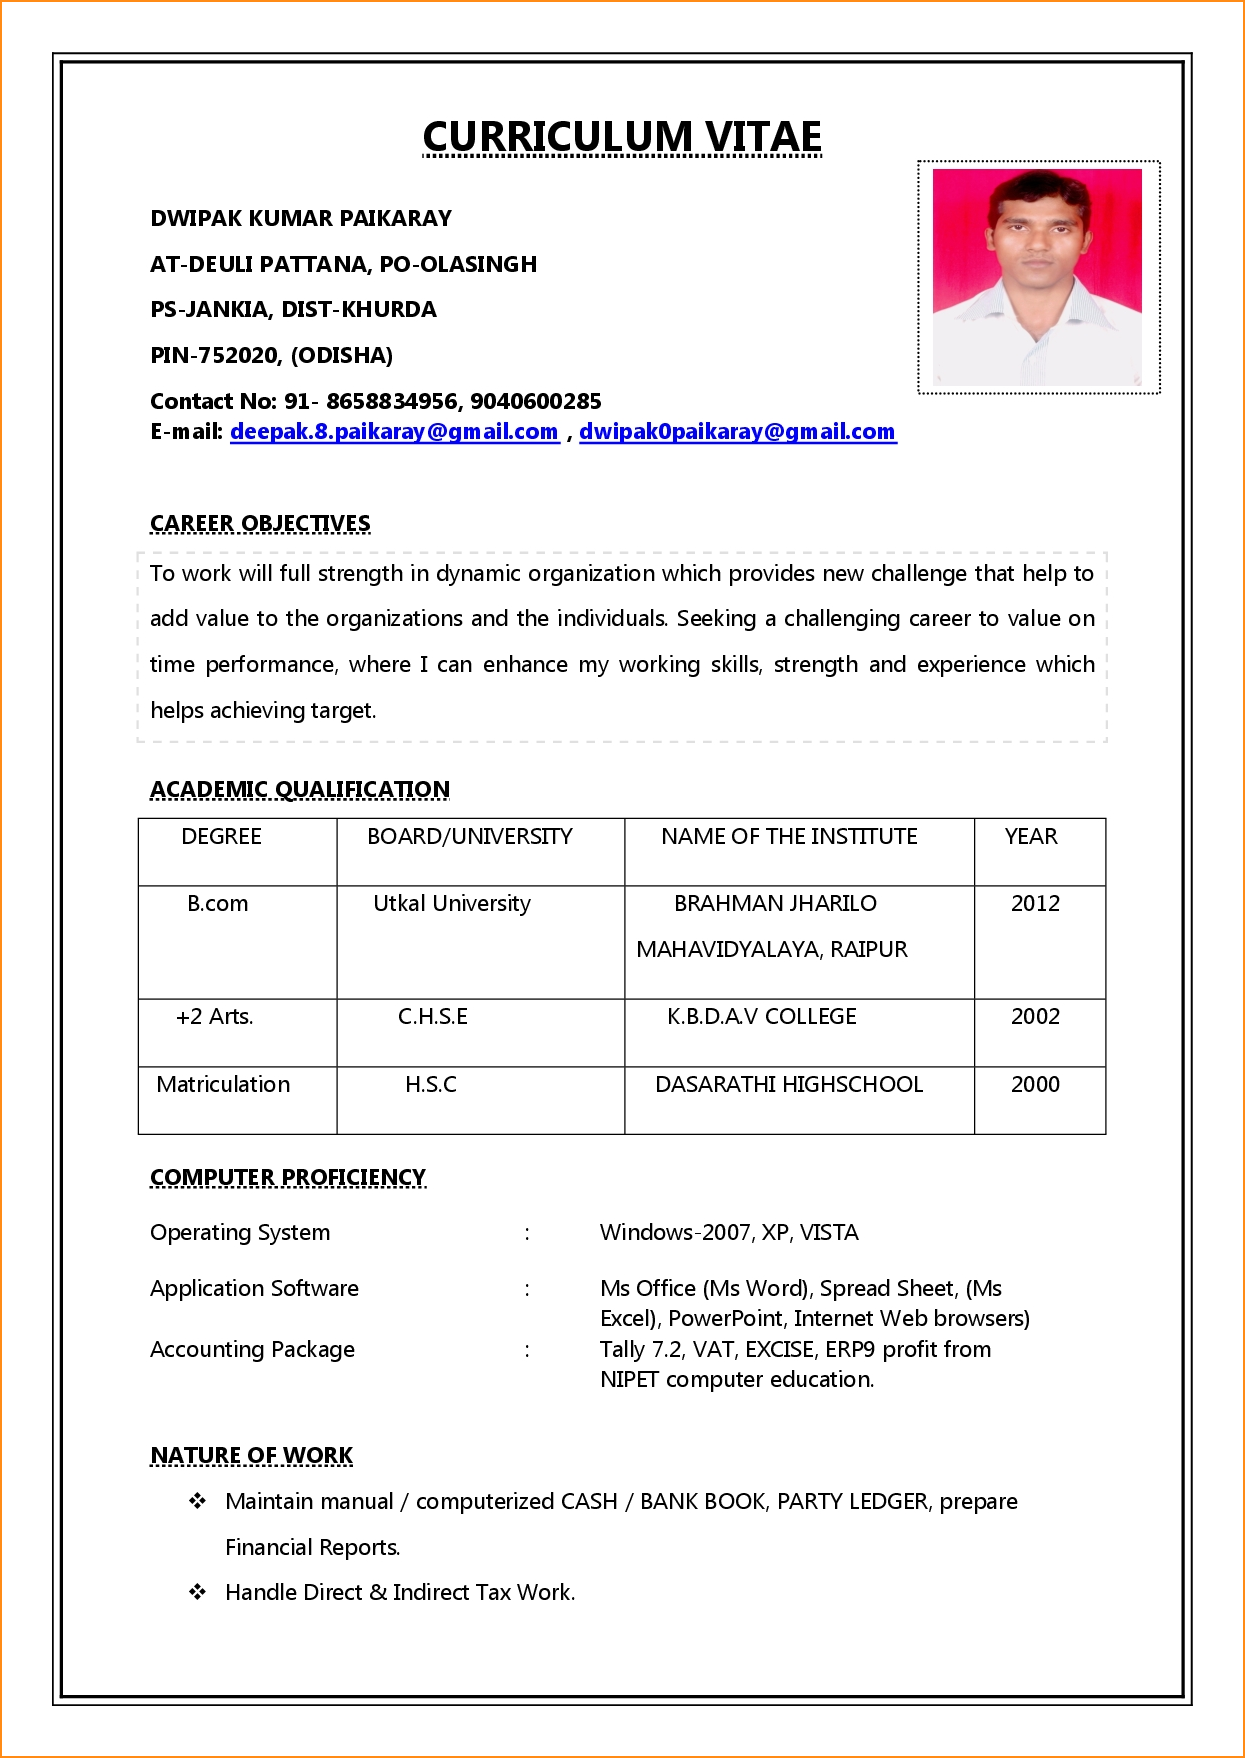 resume format job format, sample for teacher simple template college students free templates downloads with no fees